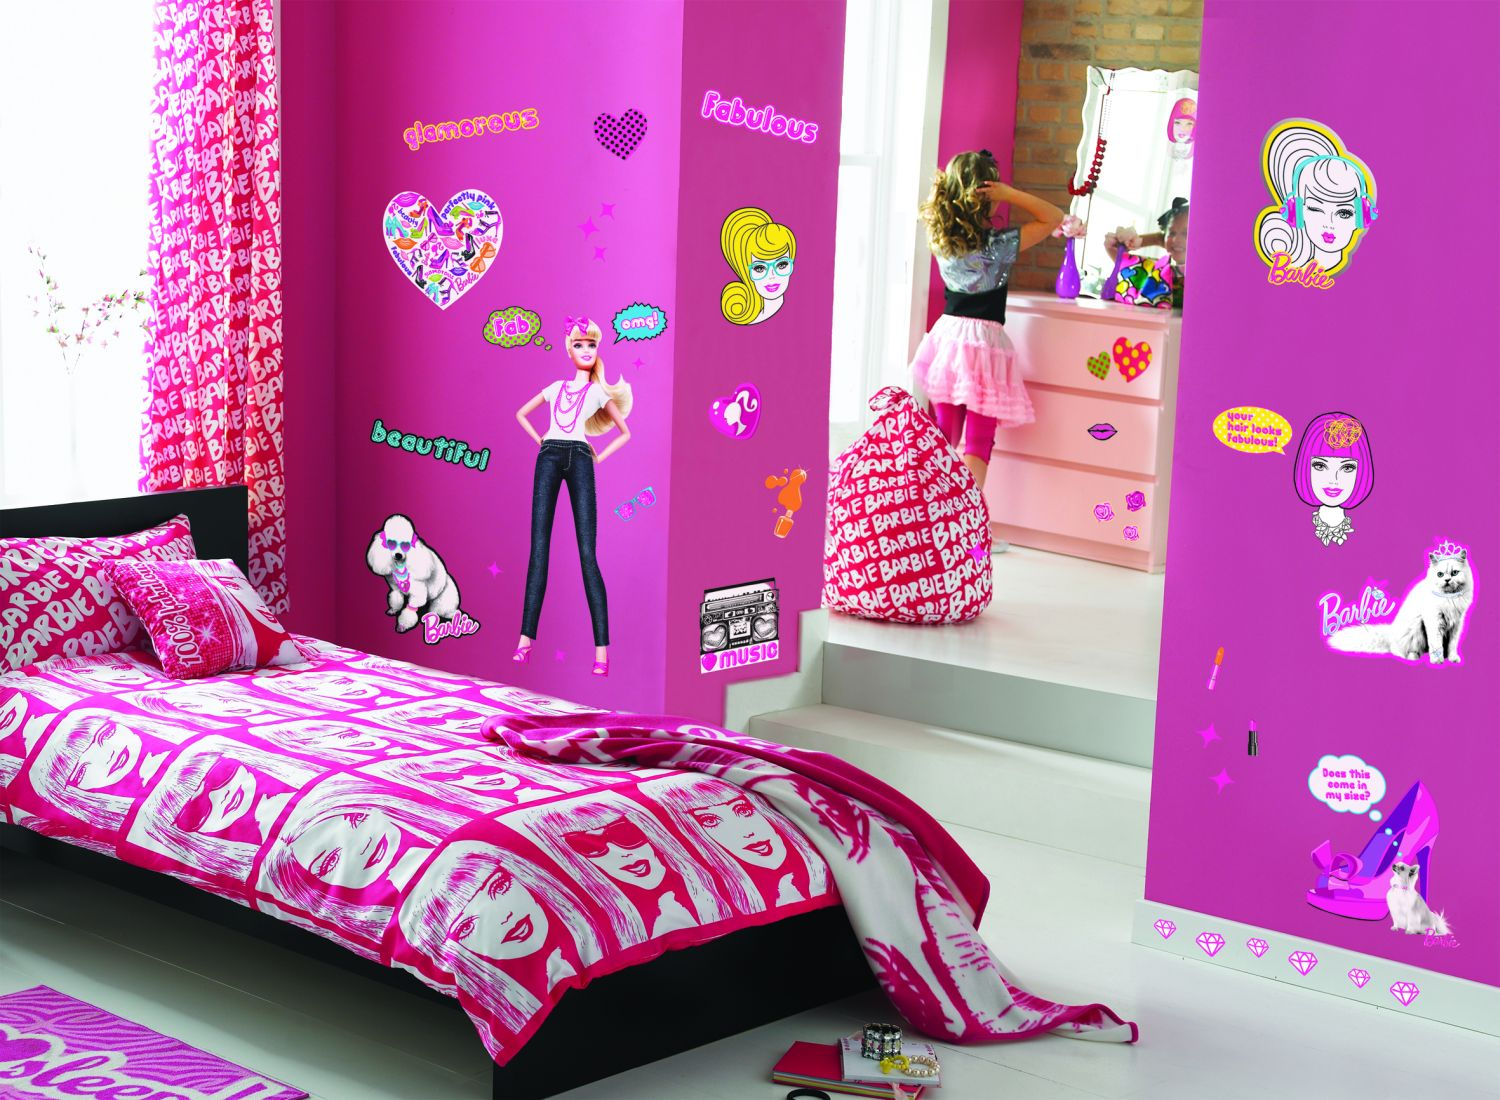 Cartoons videos barbie princess bedroom set decoration - Habitaciones para ninas ...